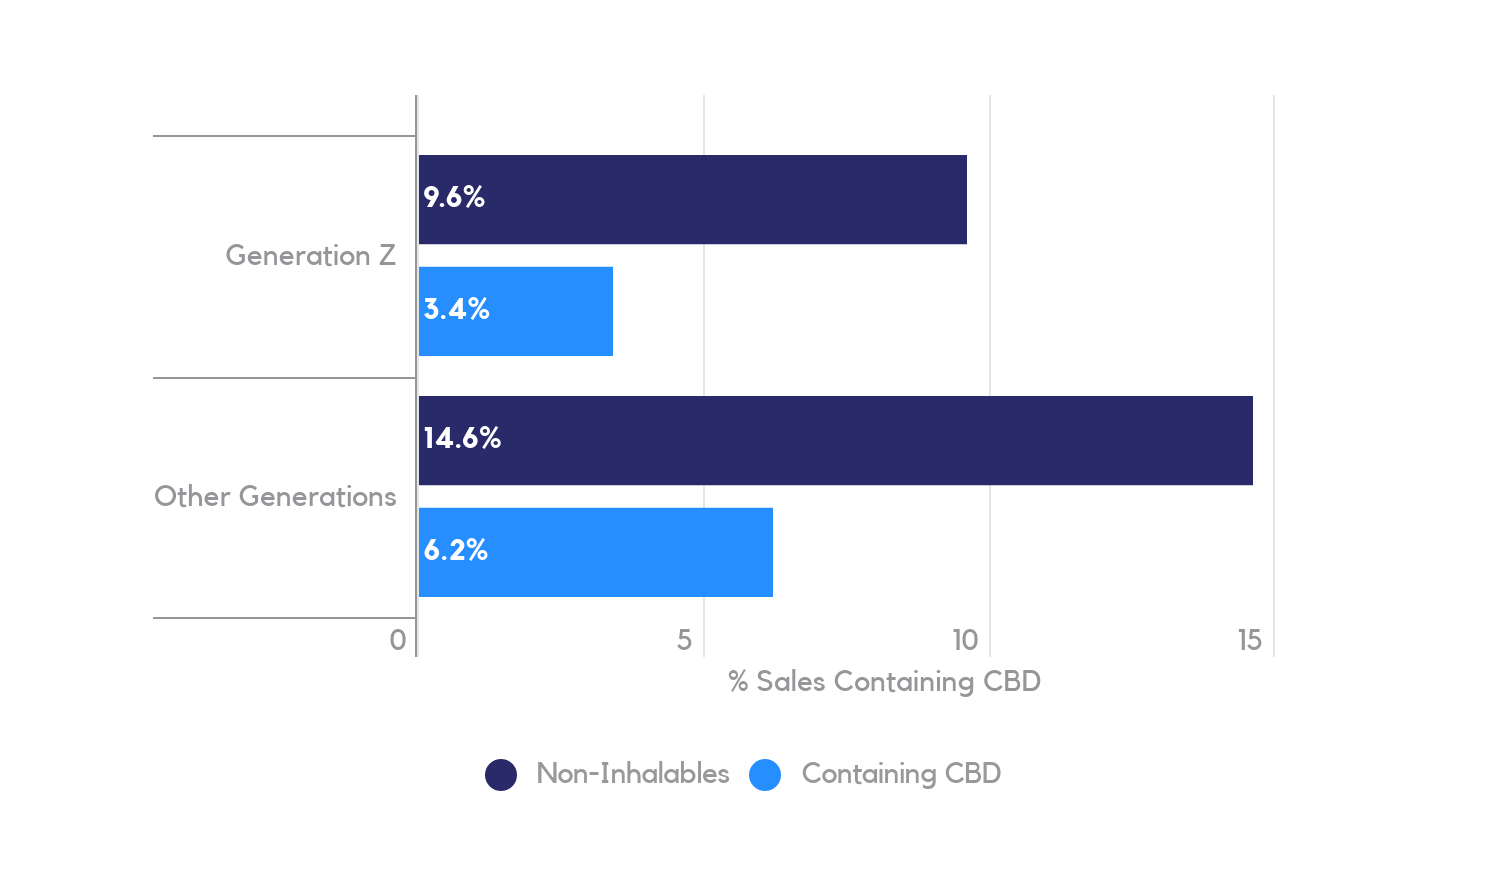 Non-inhalable and CBD-heavy % of Cannabis Sales